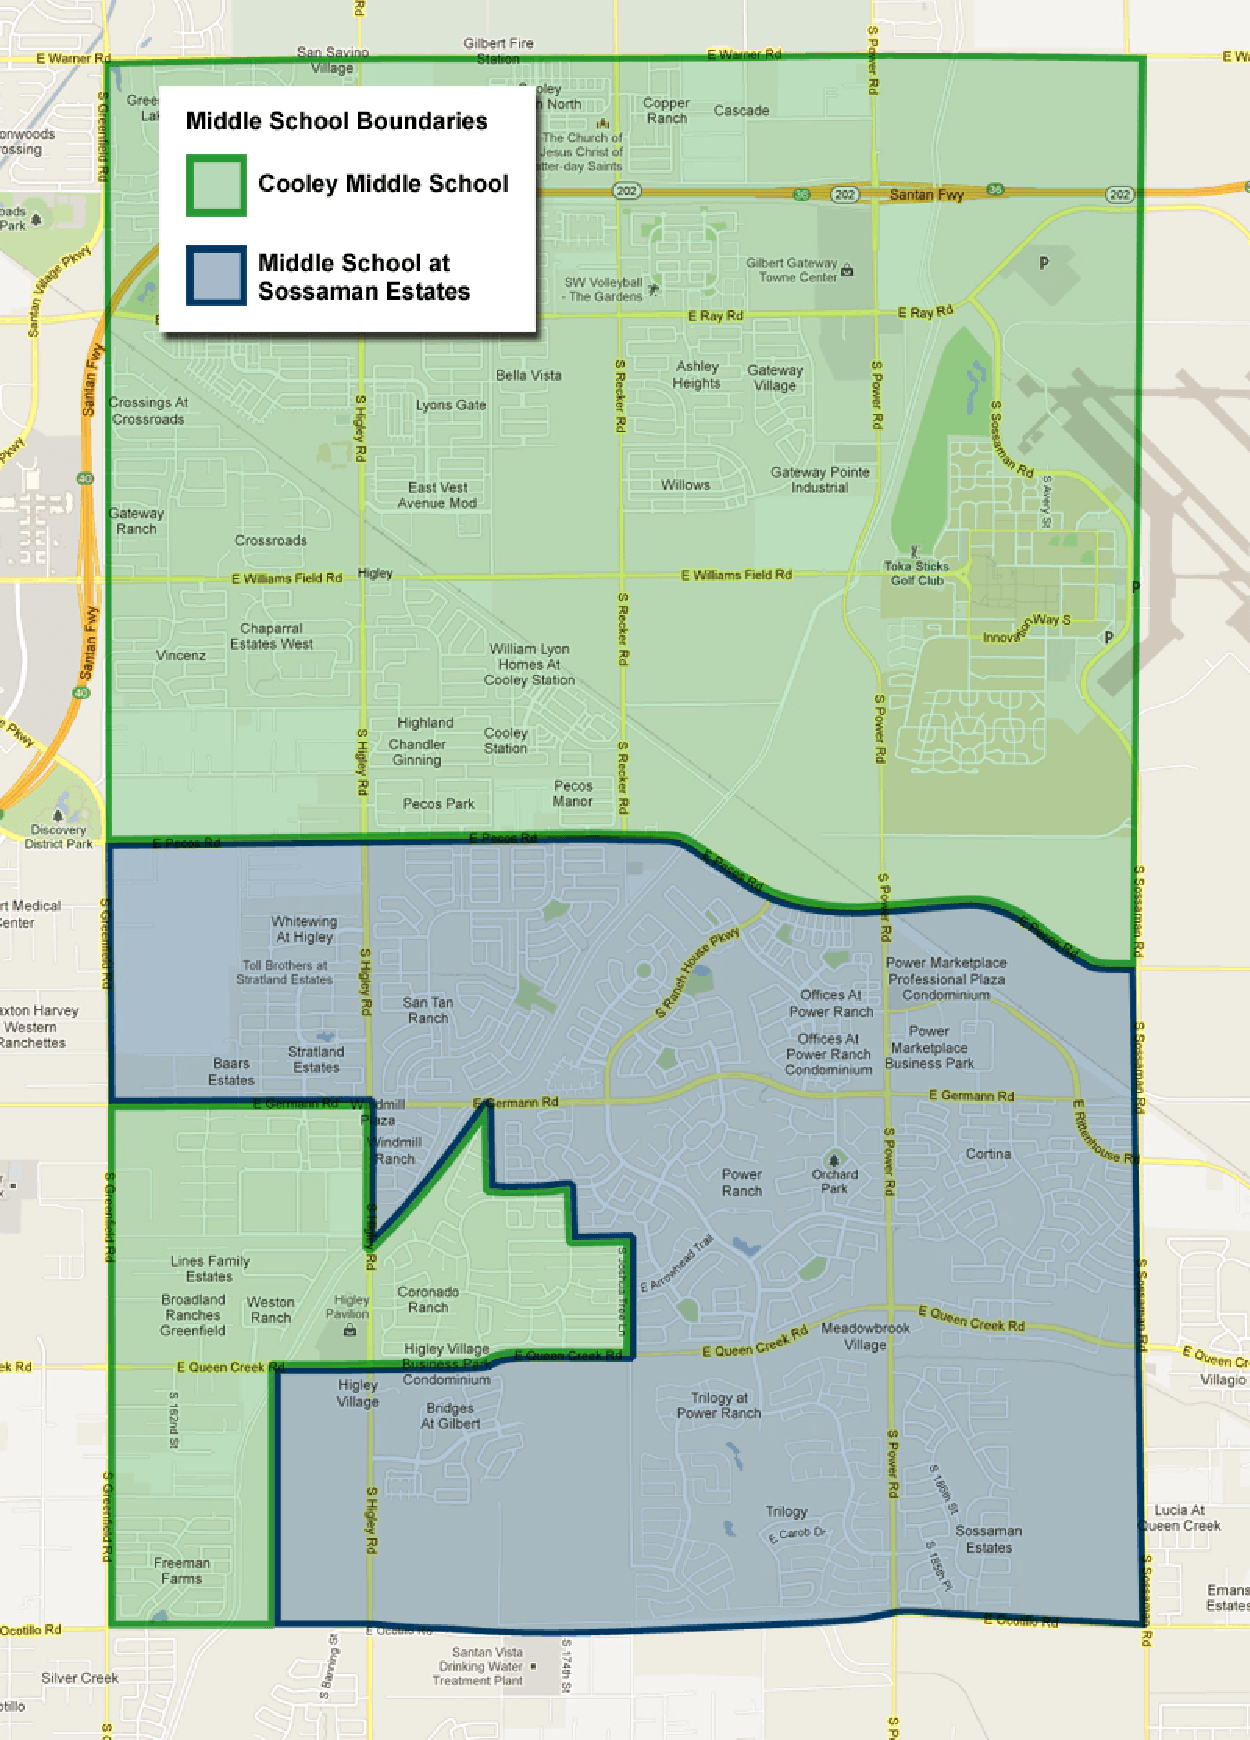 Higley Junior High School Boundary Map